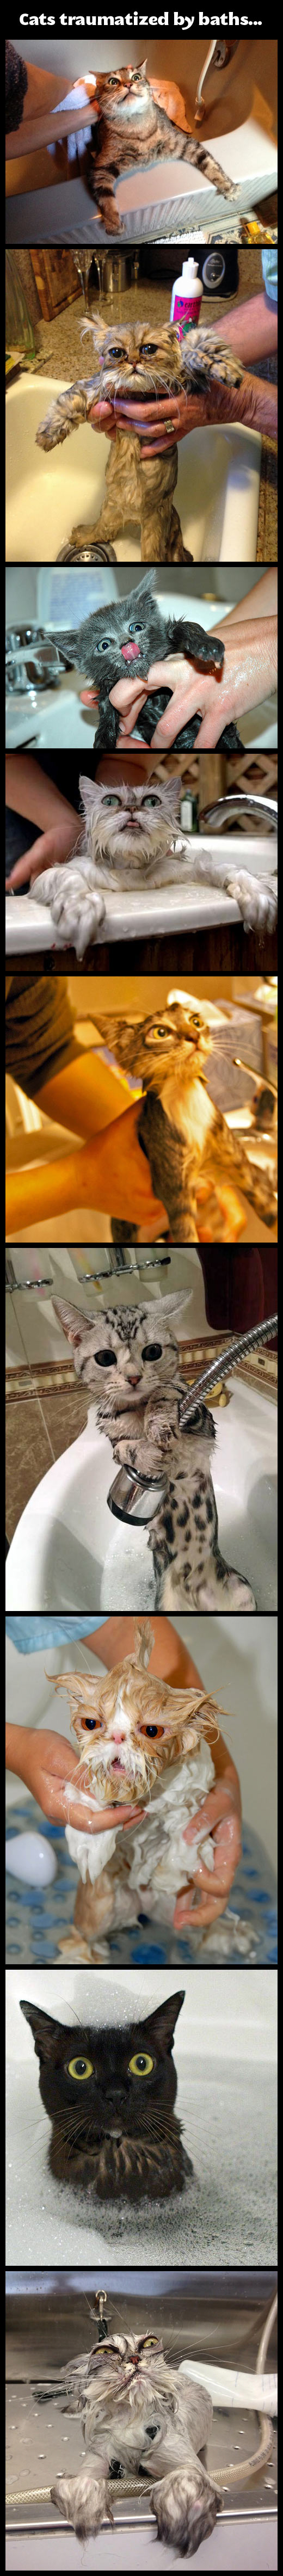 Cats traumatized by baths…